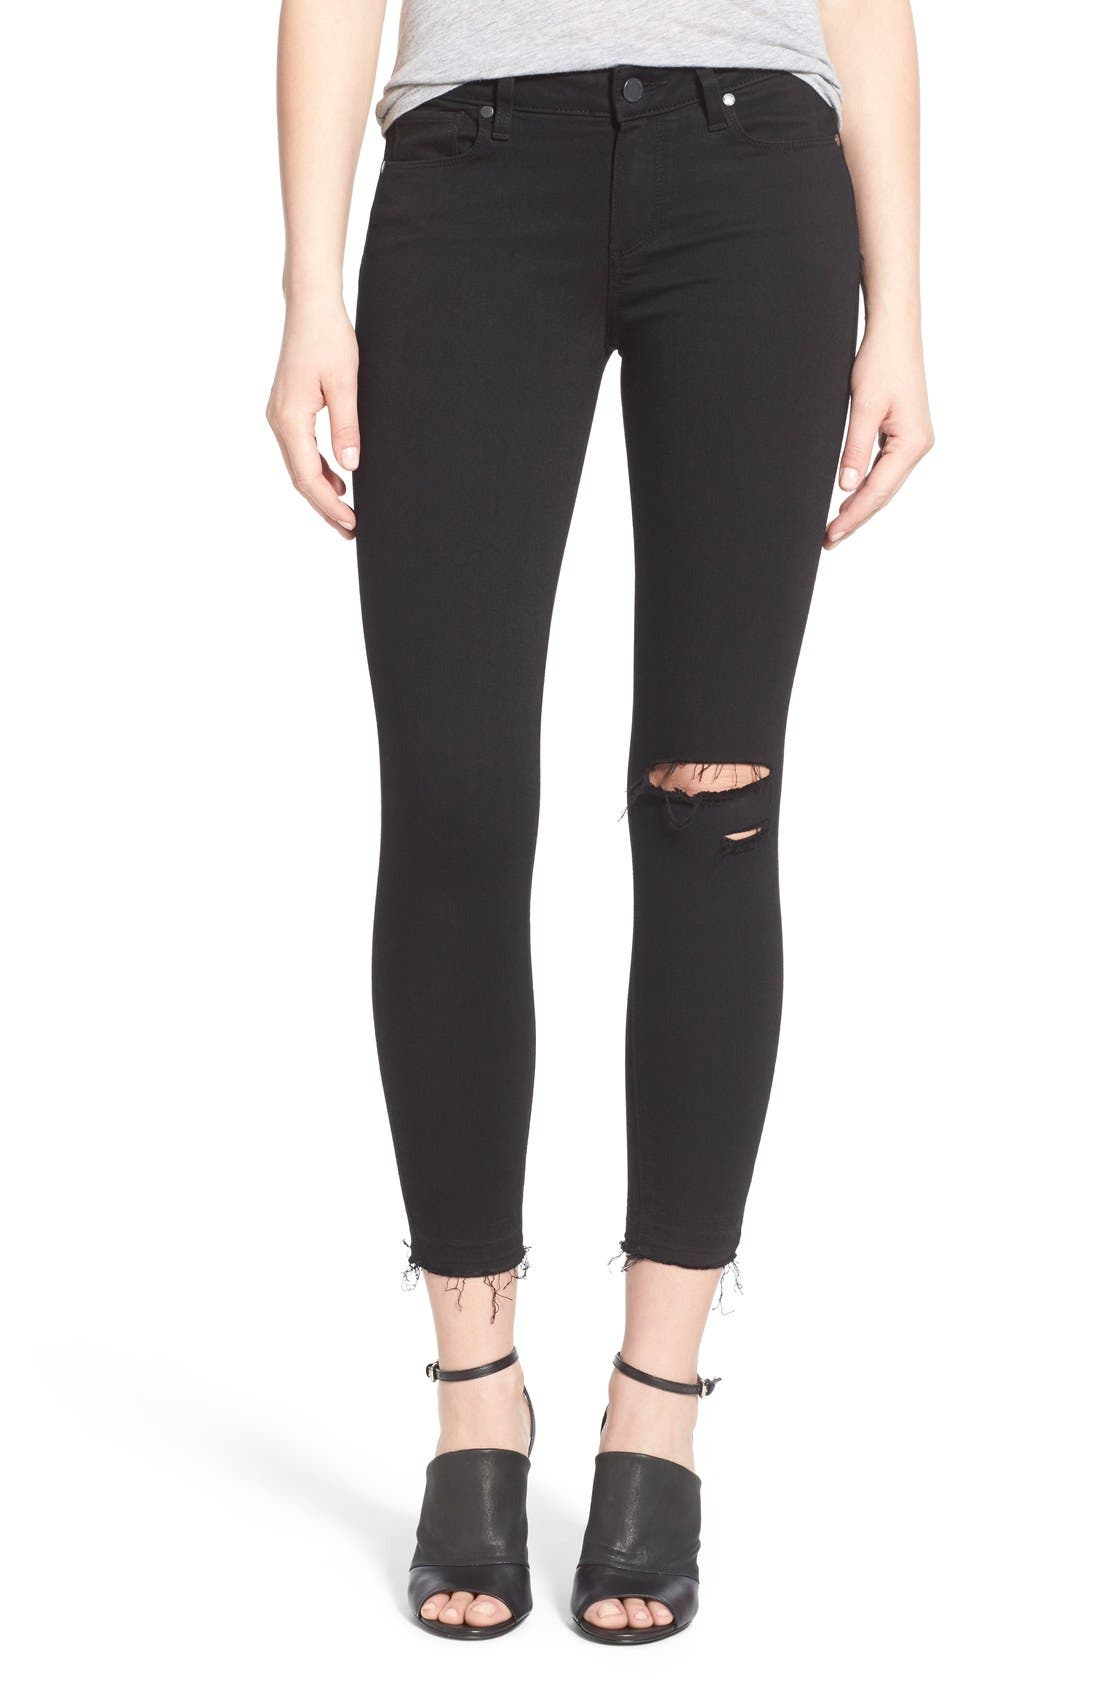 Transcend - Verdugo Crop Skinny Jeans,                             Main thumbnail 1, color,                             001